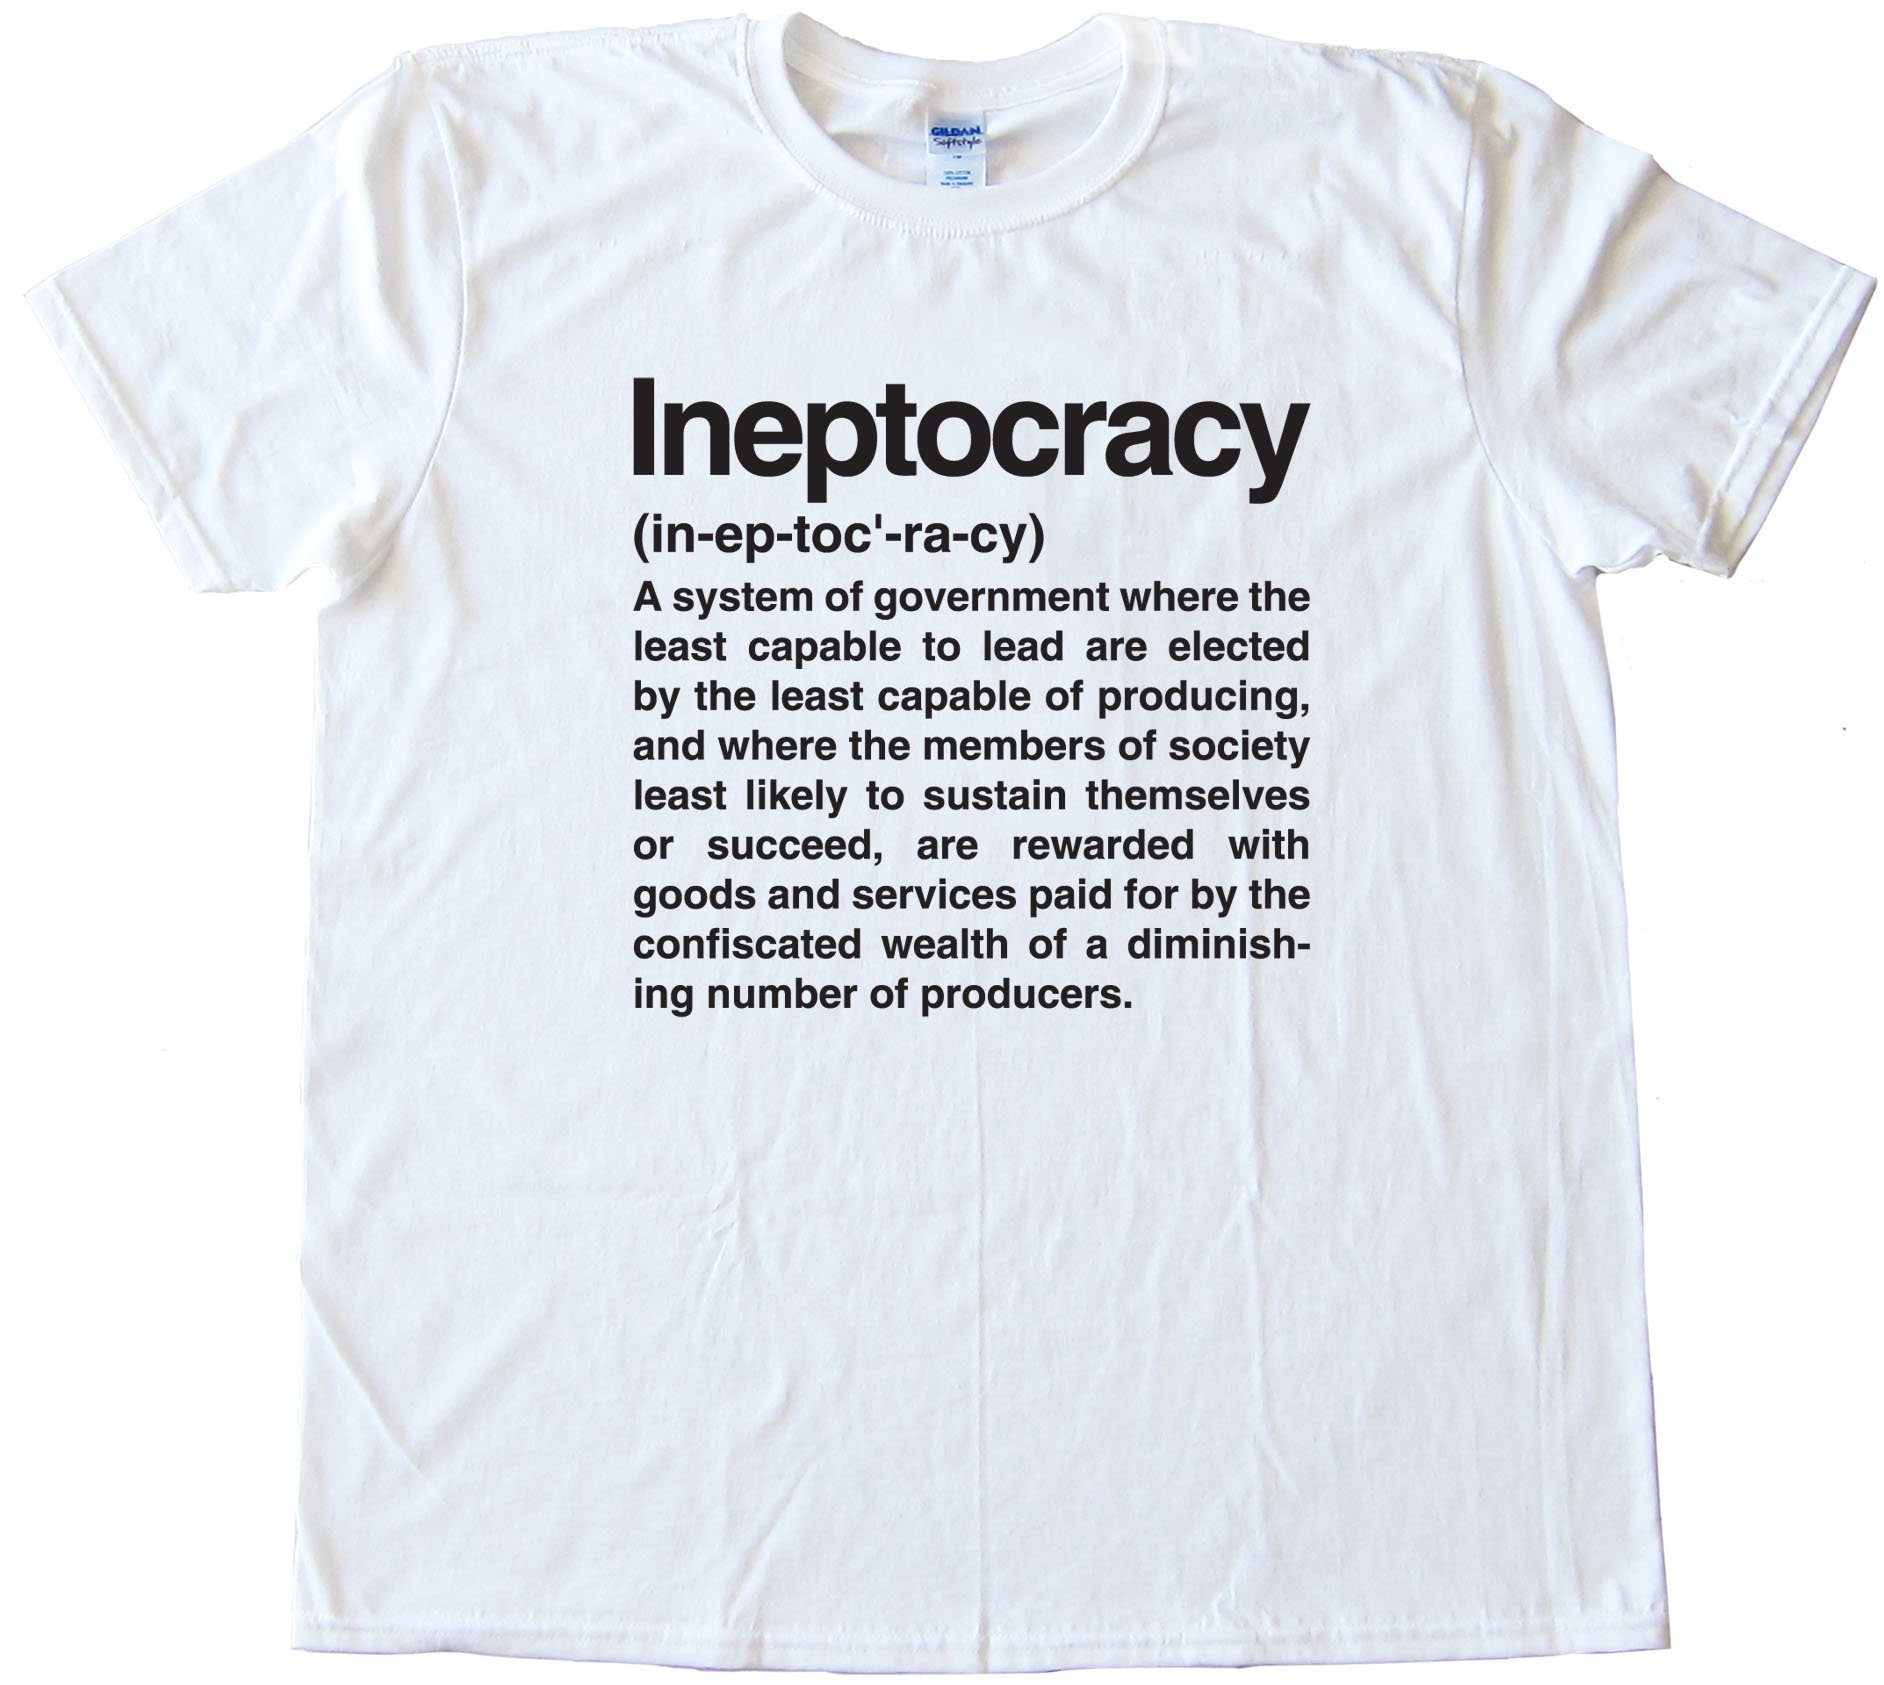 Ineptocracy Definition - Tee Shirt